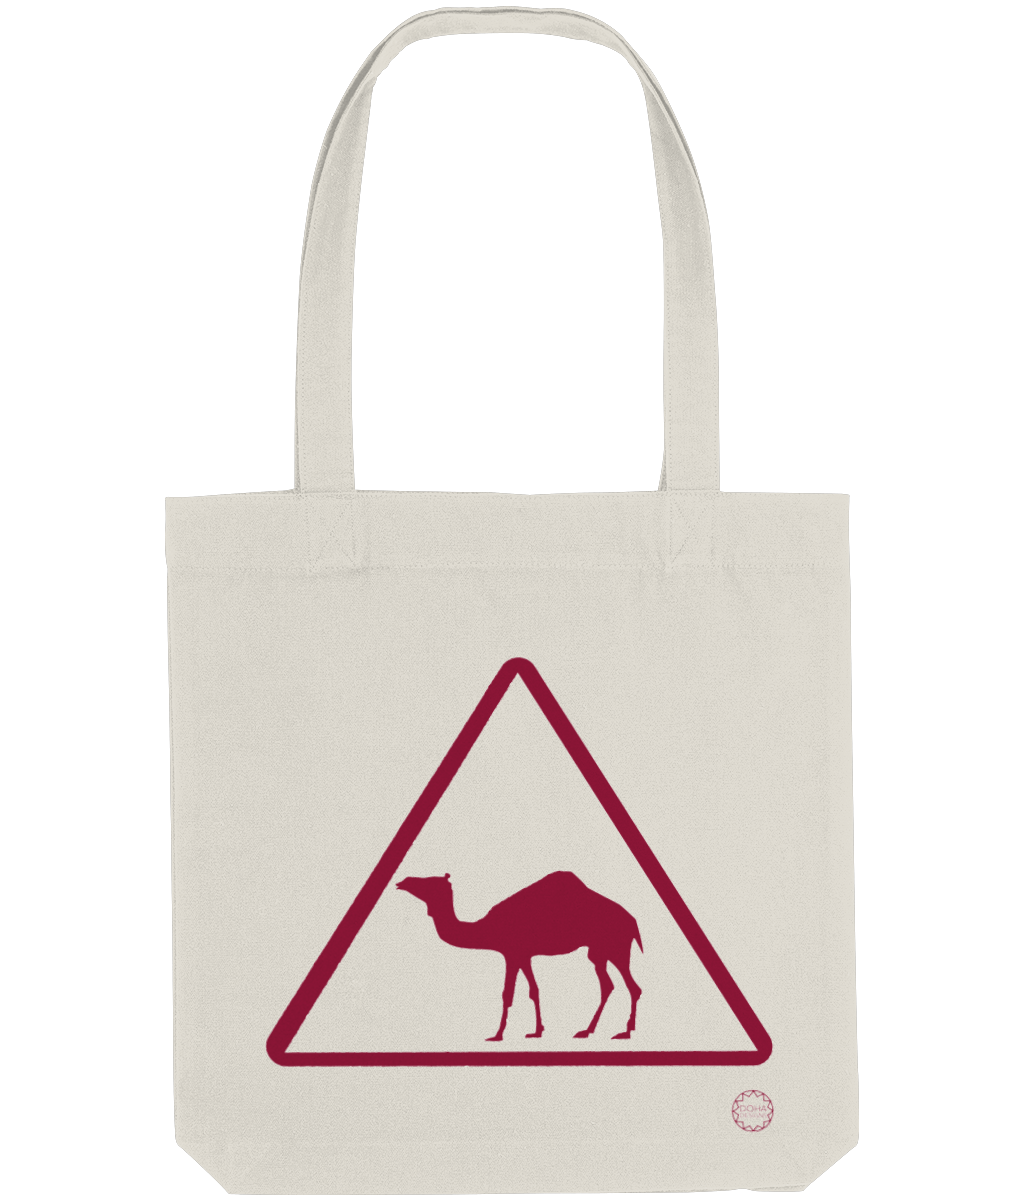 Camel Tote Bag in natural